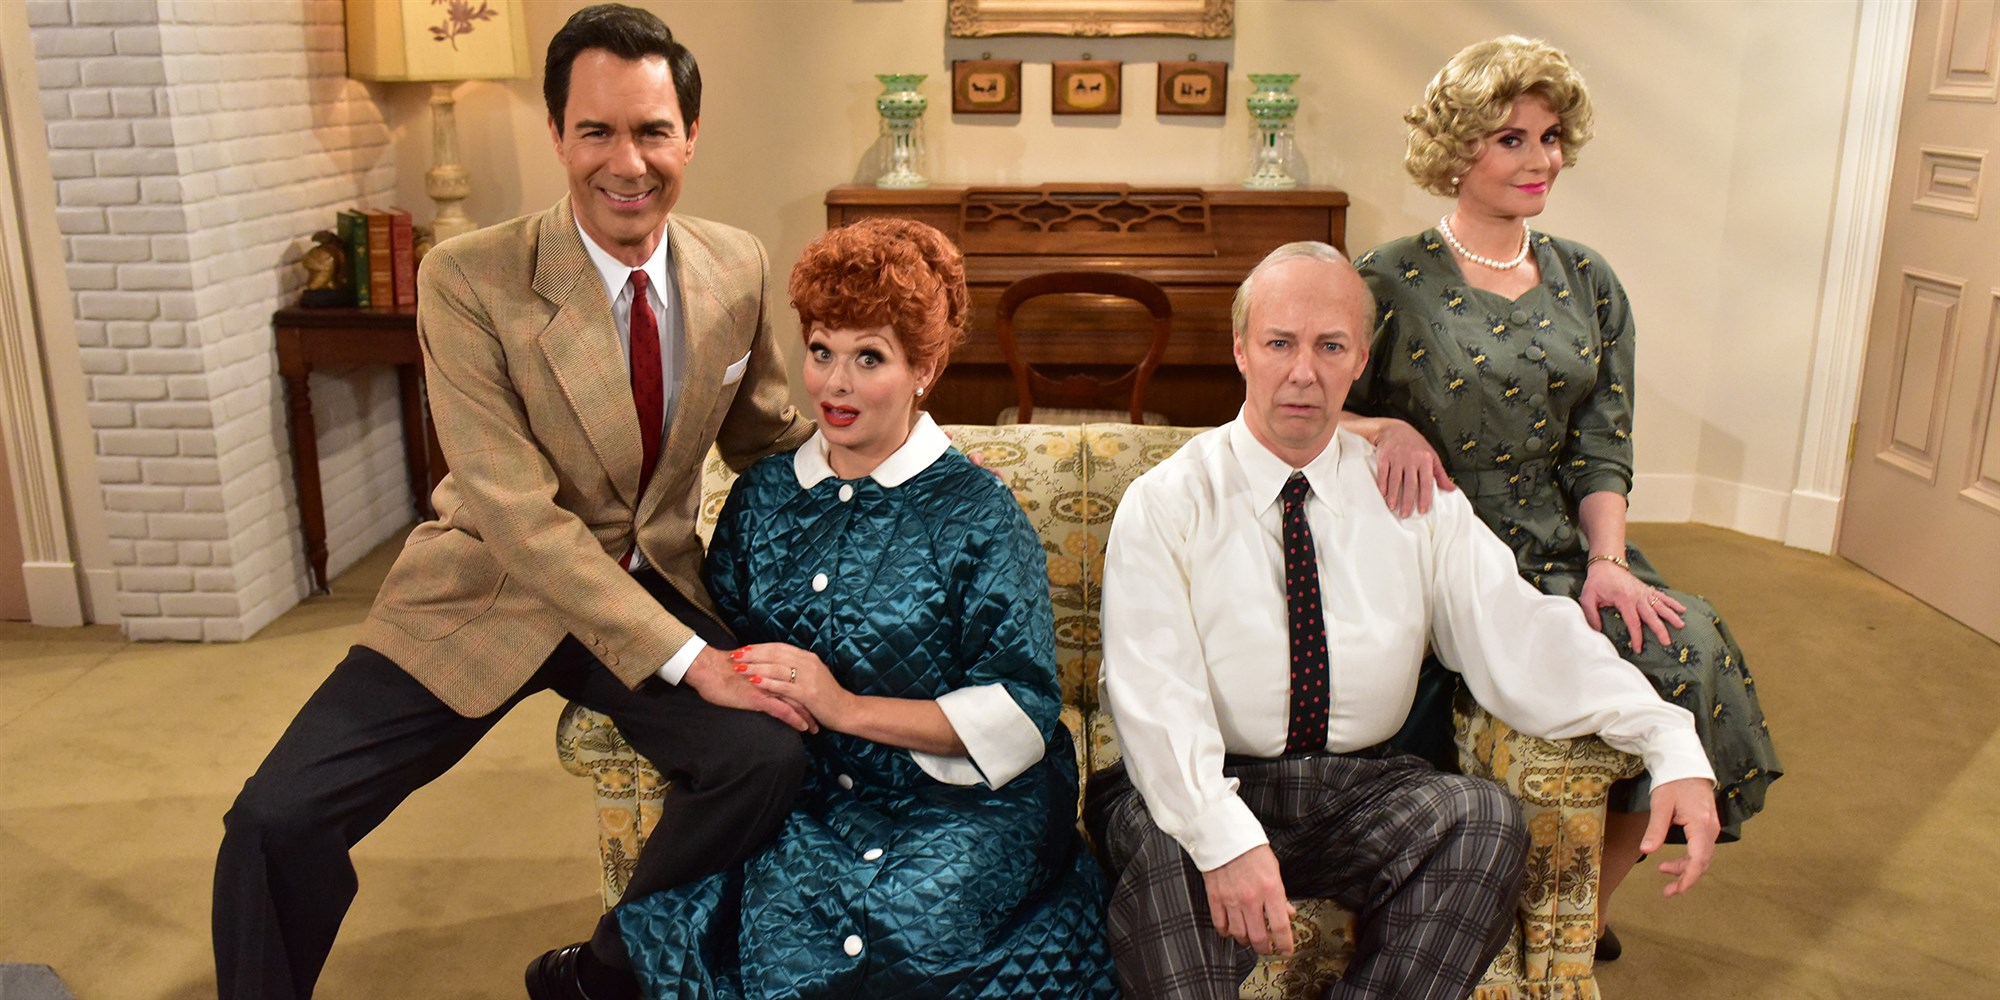 will and grace cast as i love lucy characters